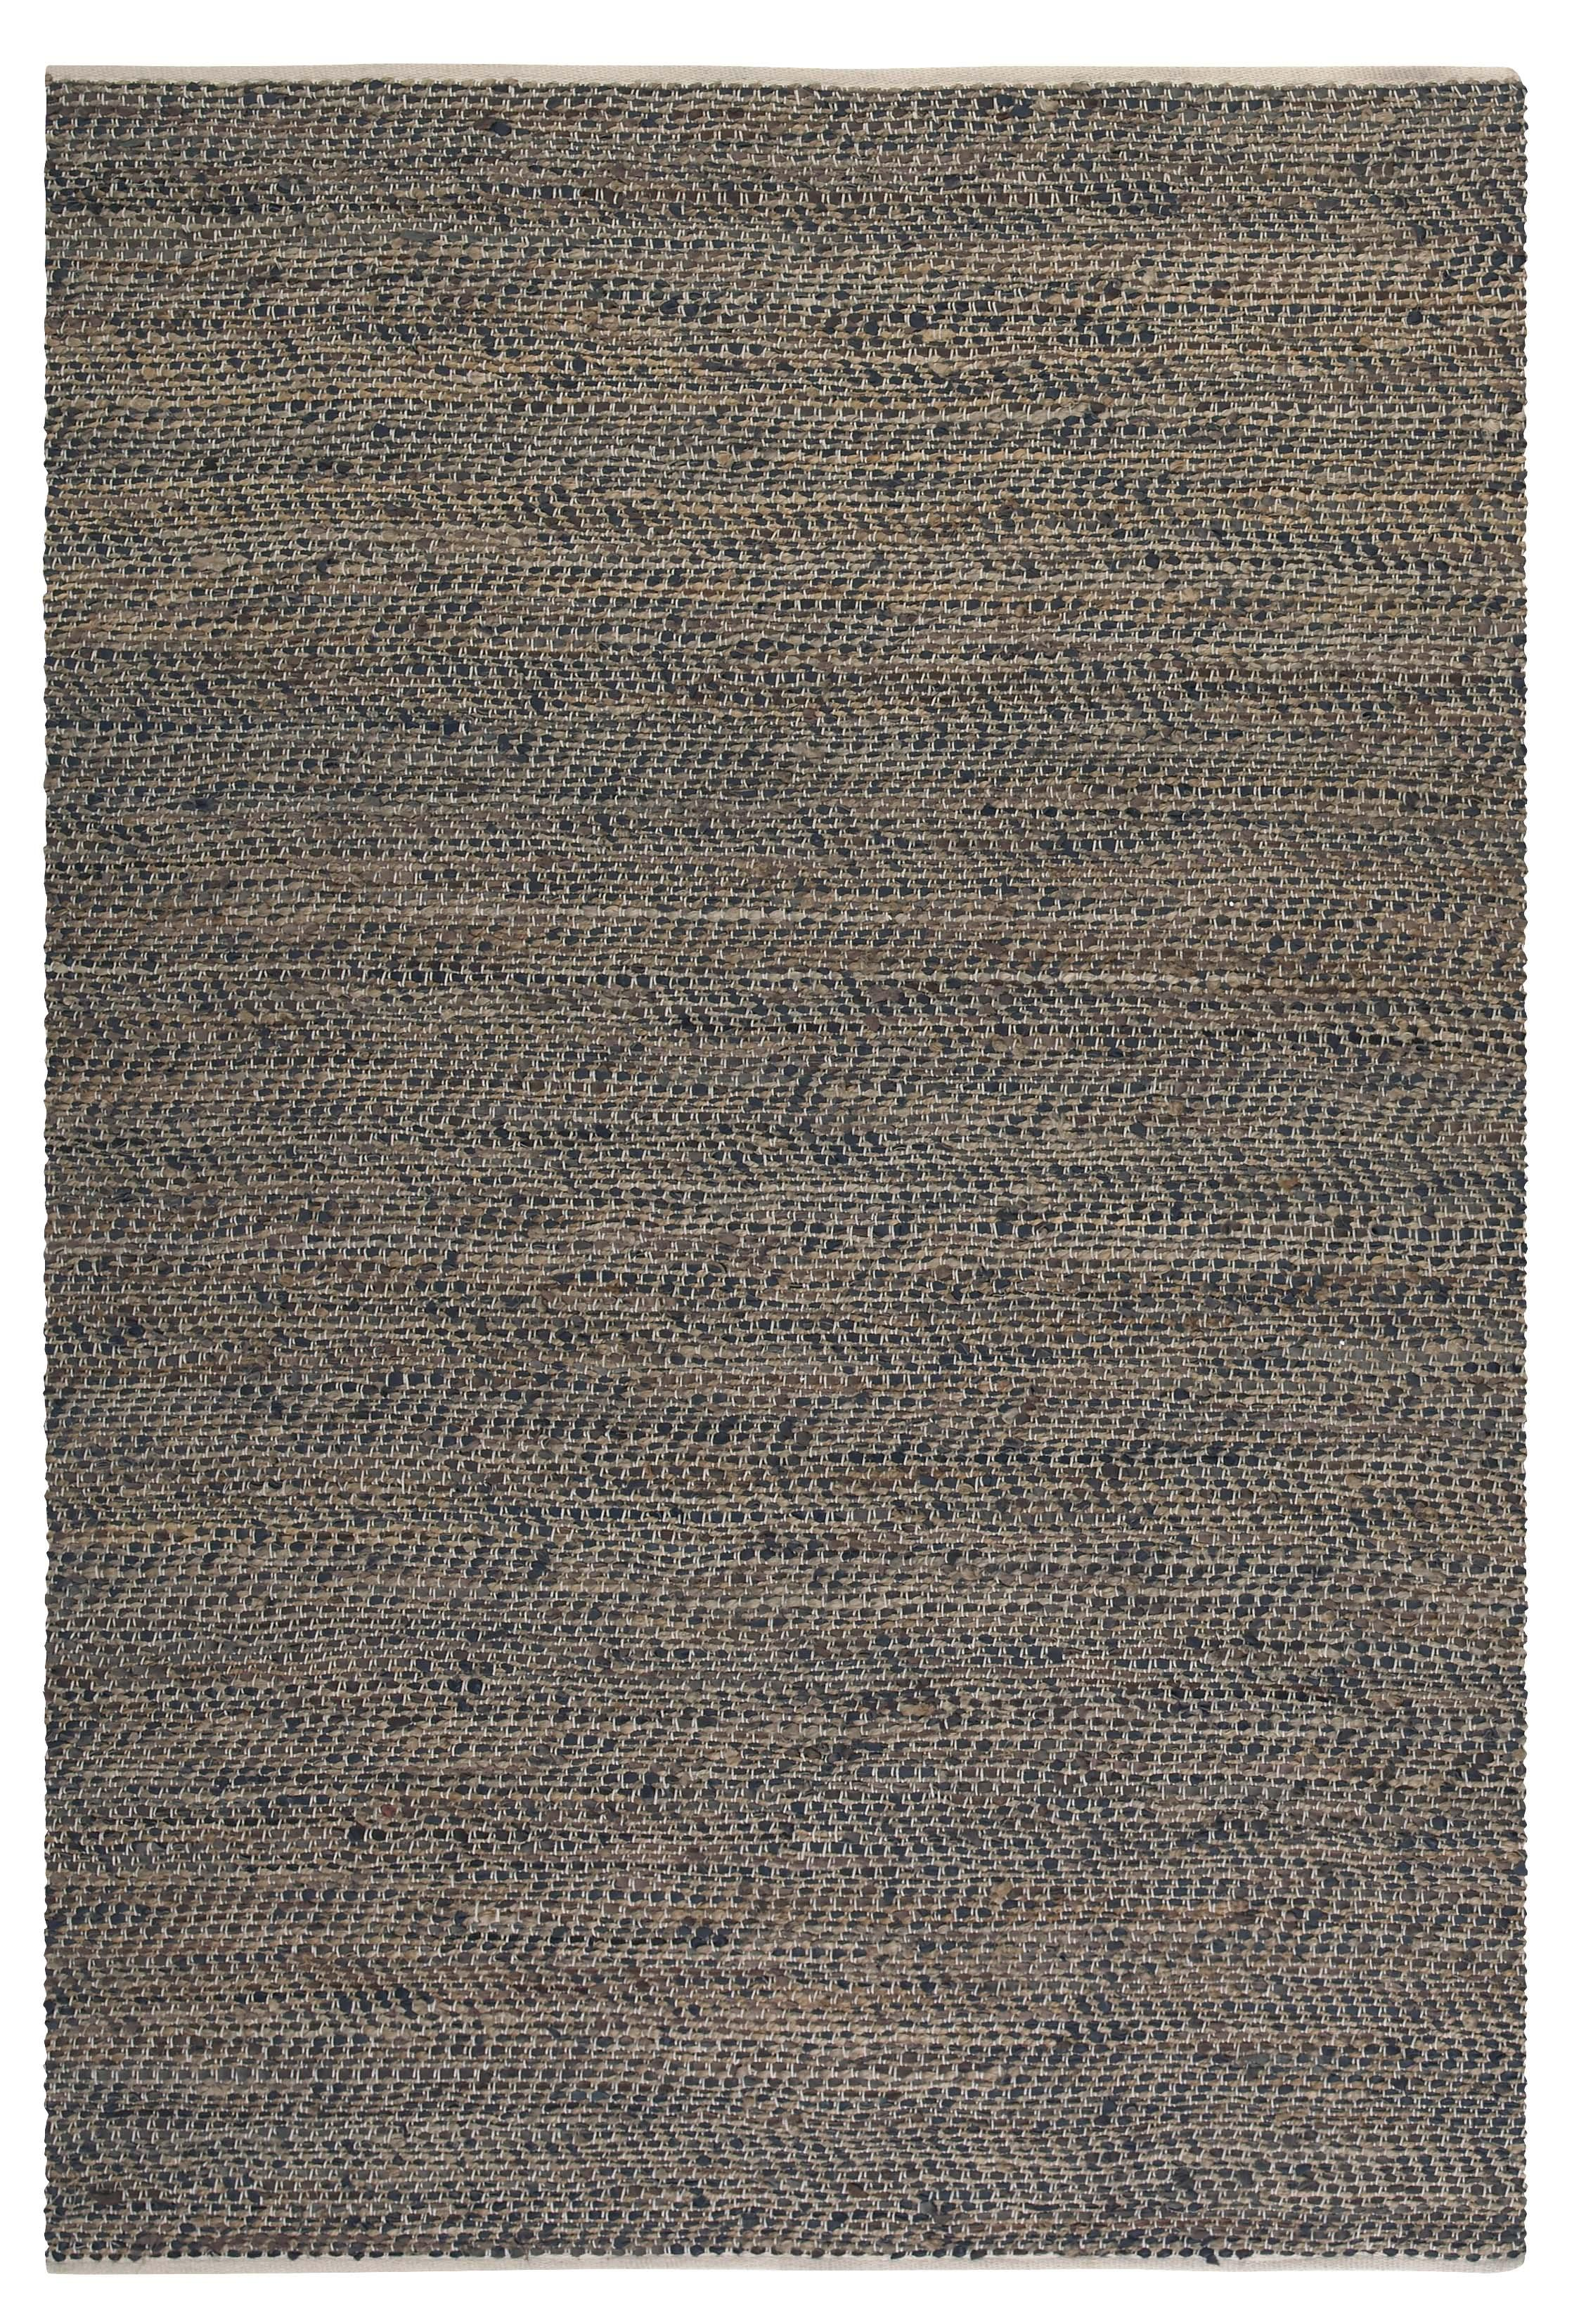 Uttermost Rugs Tobais 9 X 12 - Item Number: 71001-9